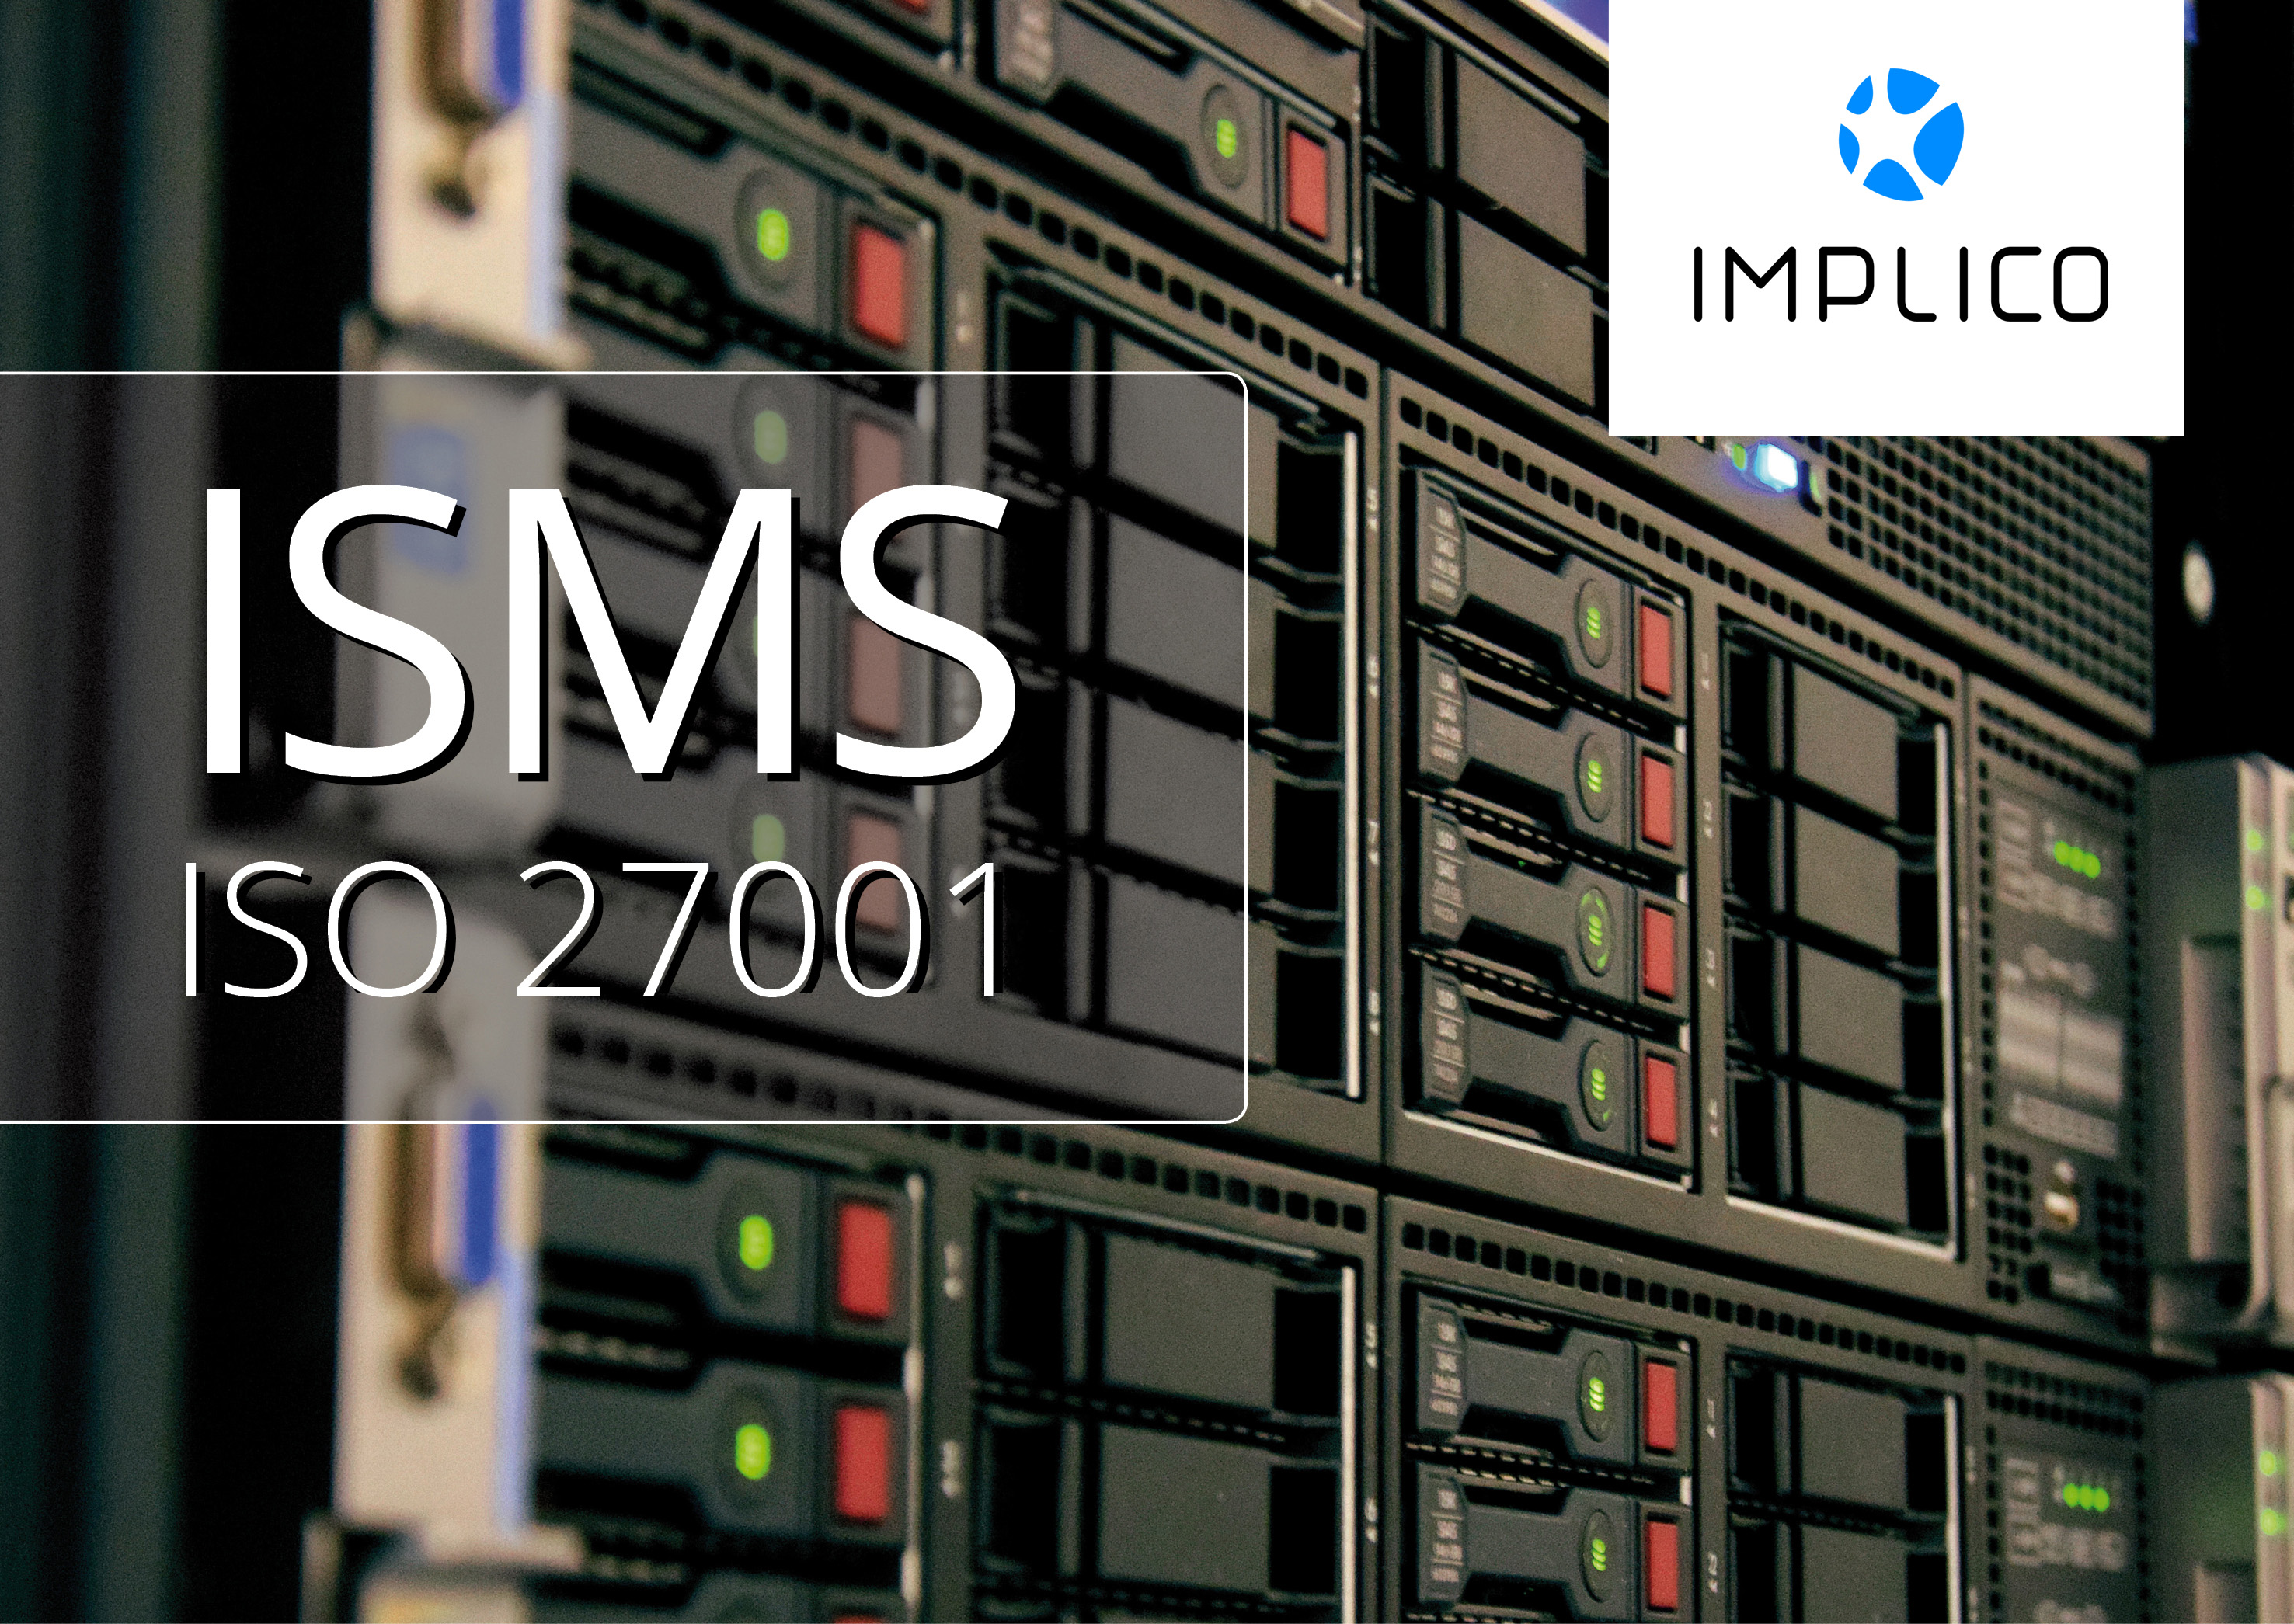 Management system for information security: Implico receives ISMS certification in accordance with ISO 27001 - Featured Image